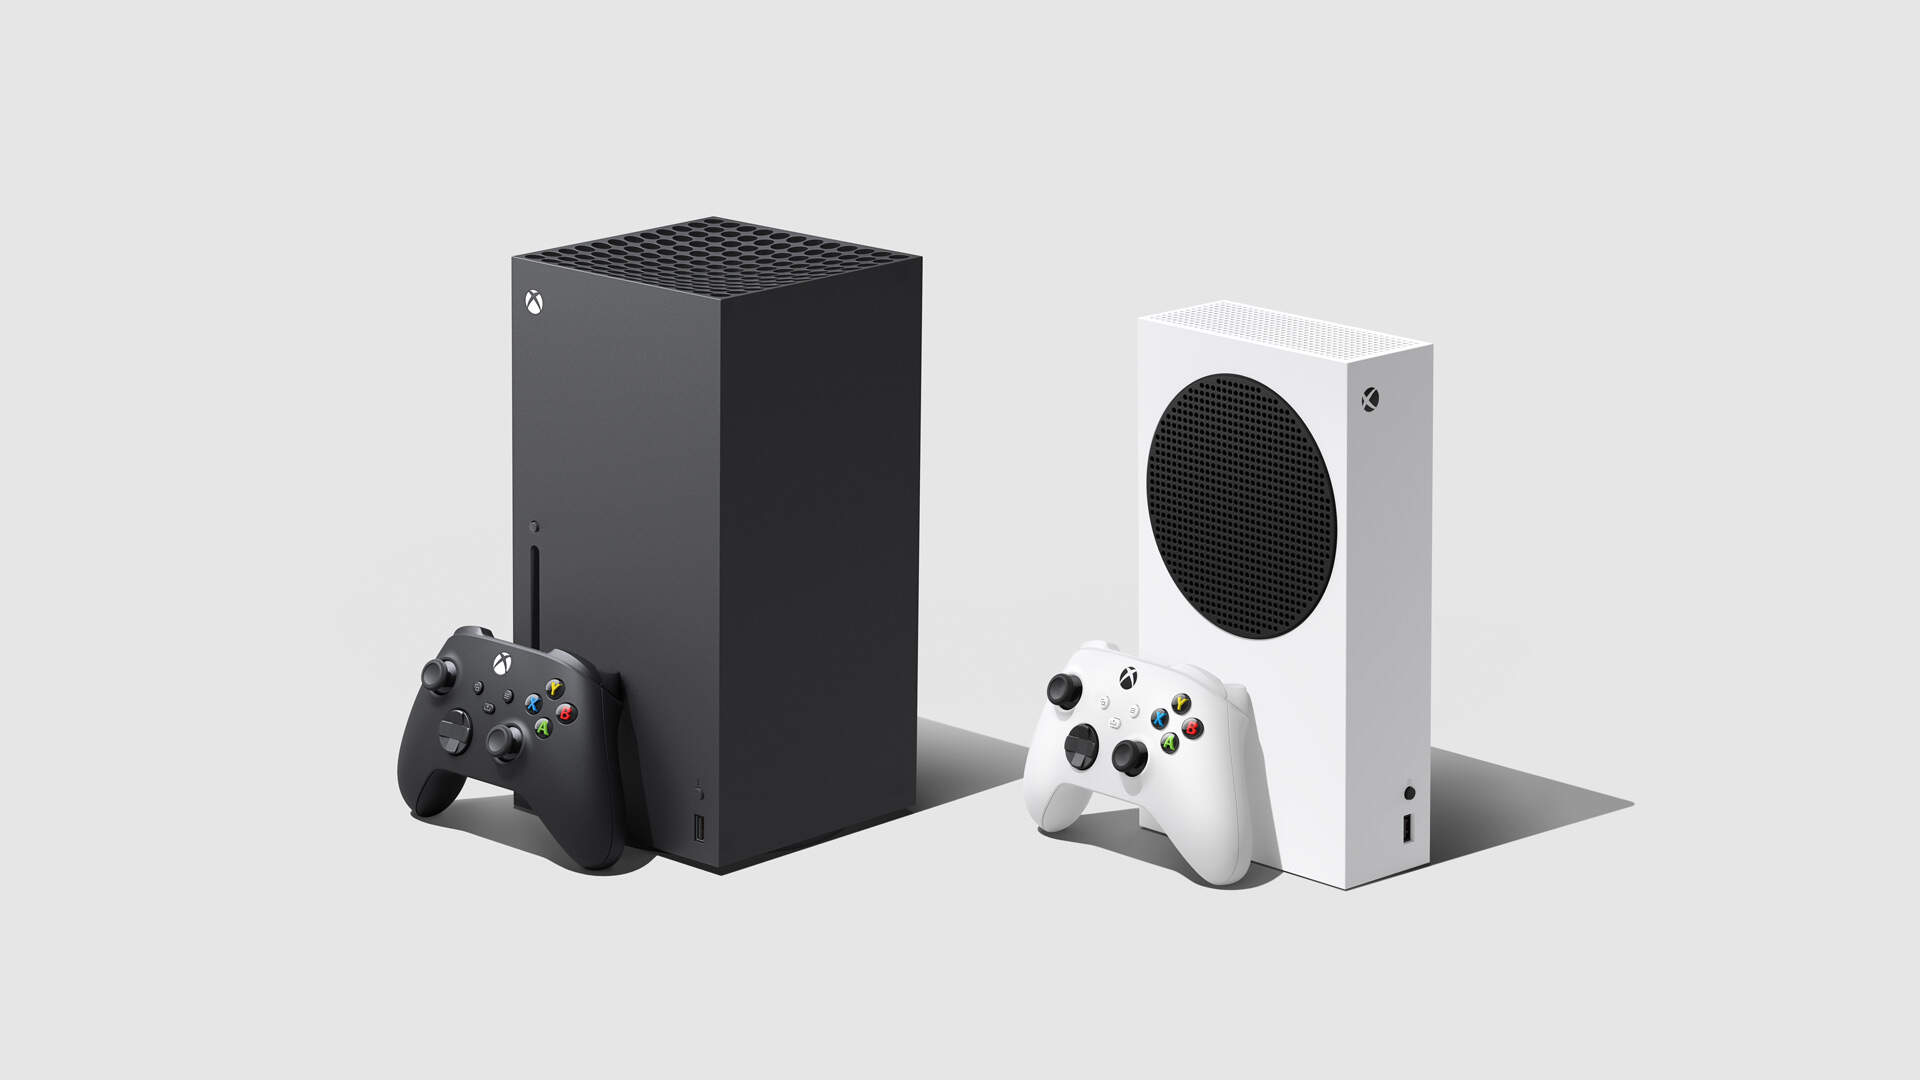 Microsoft Clarifies Backward Compatibility Differences Between Xbox Series X and Series S